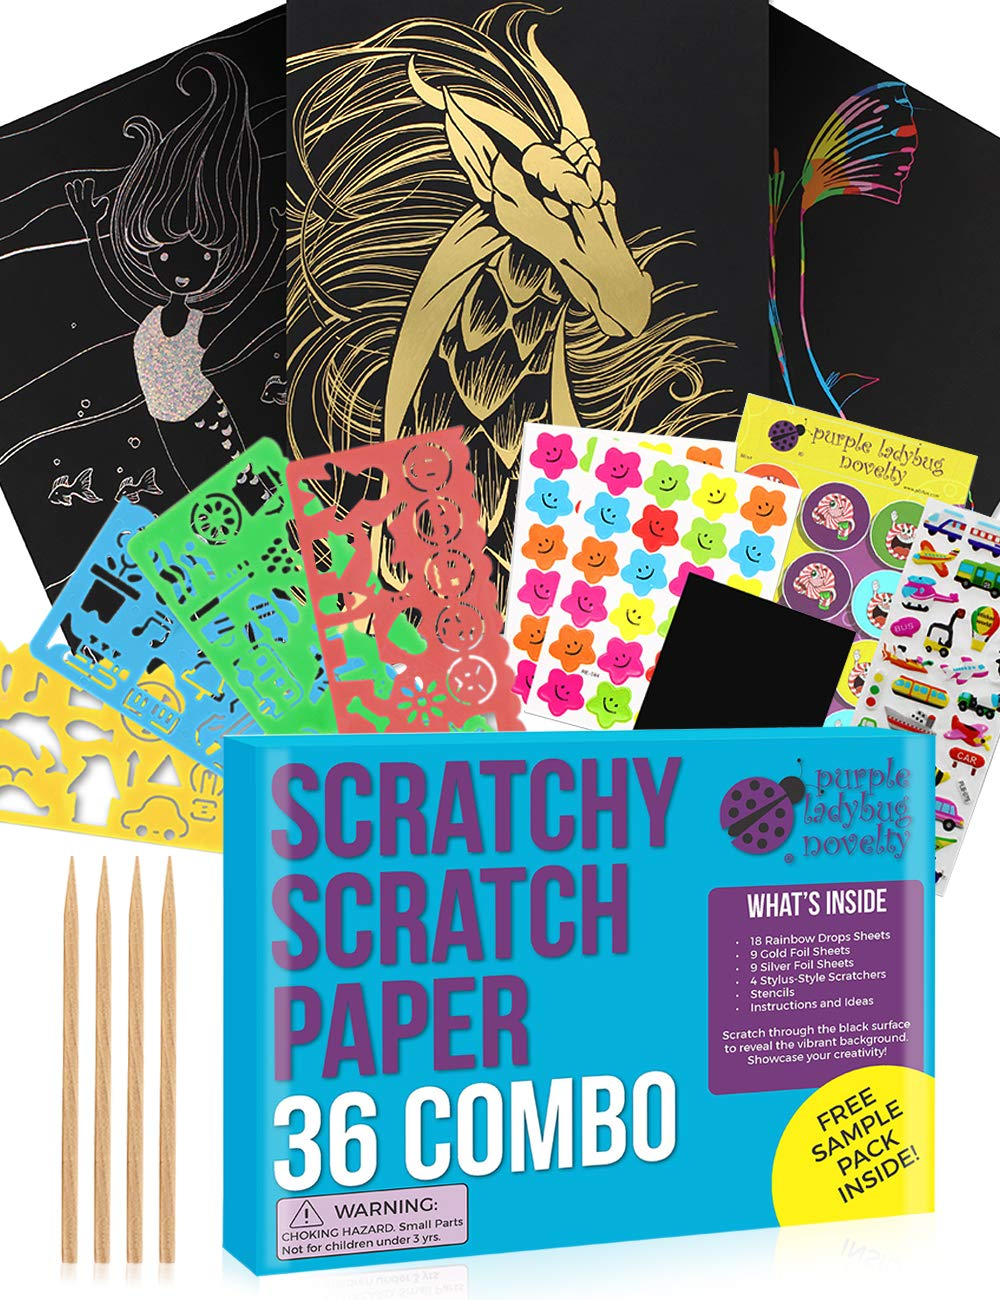 Purple Ladybug Scratch Paper Art Set for Kids! Variety Pack with 36 Full Sized Sheets, 3 Unique Colors: Rainbow, Gold, Silver + Stencils! Great Gift for Teens, as Kids Art Supplies, & Fun DIY Crafts!